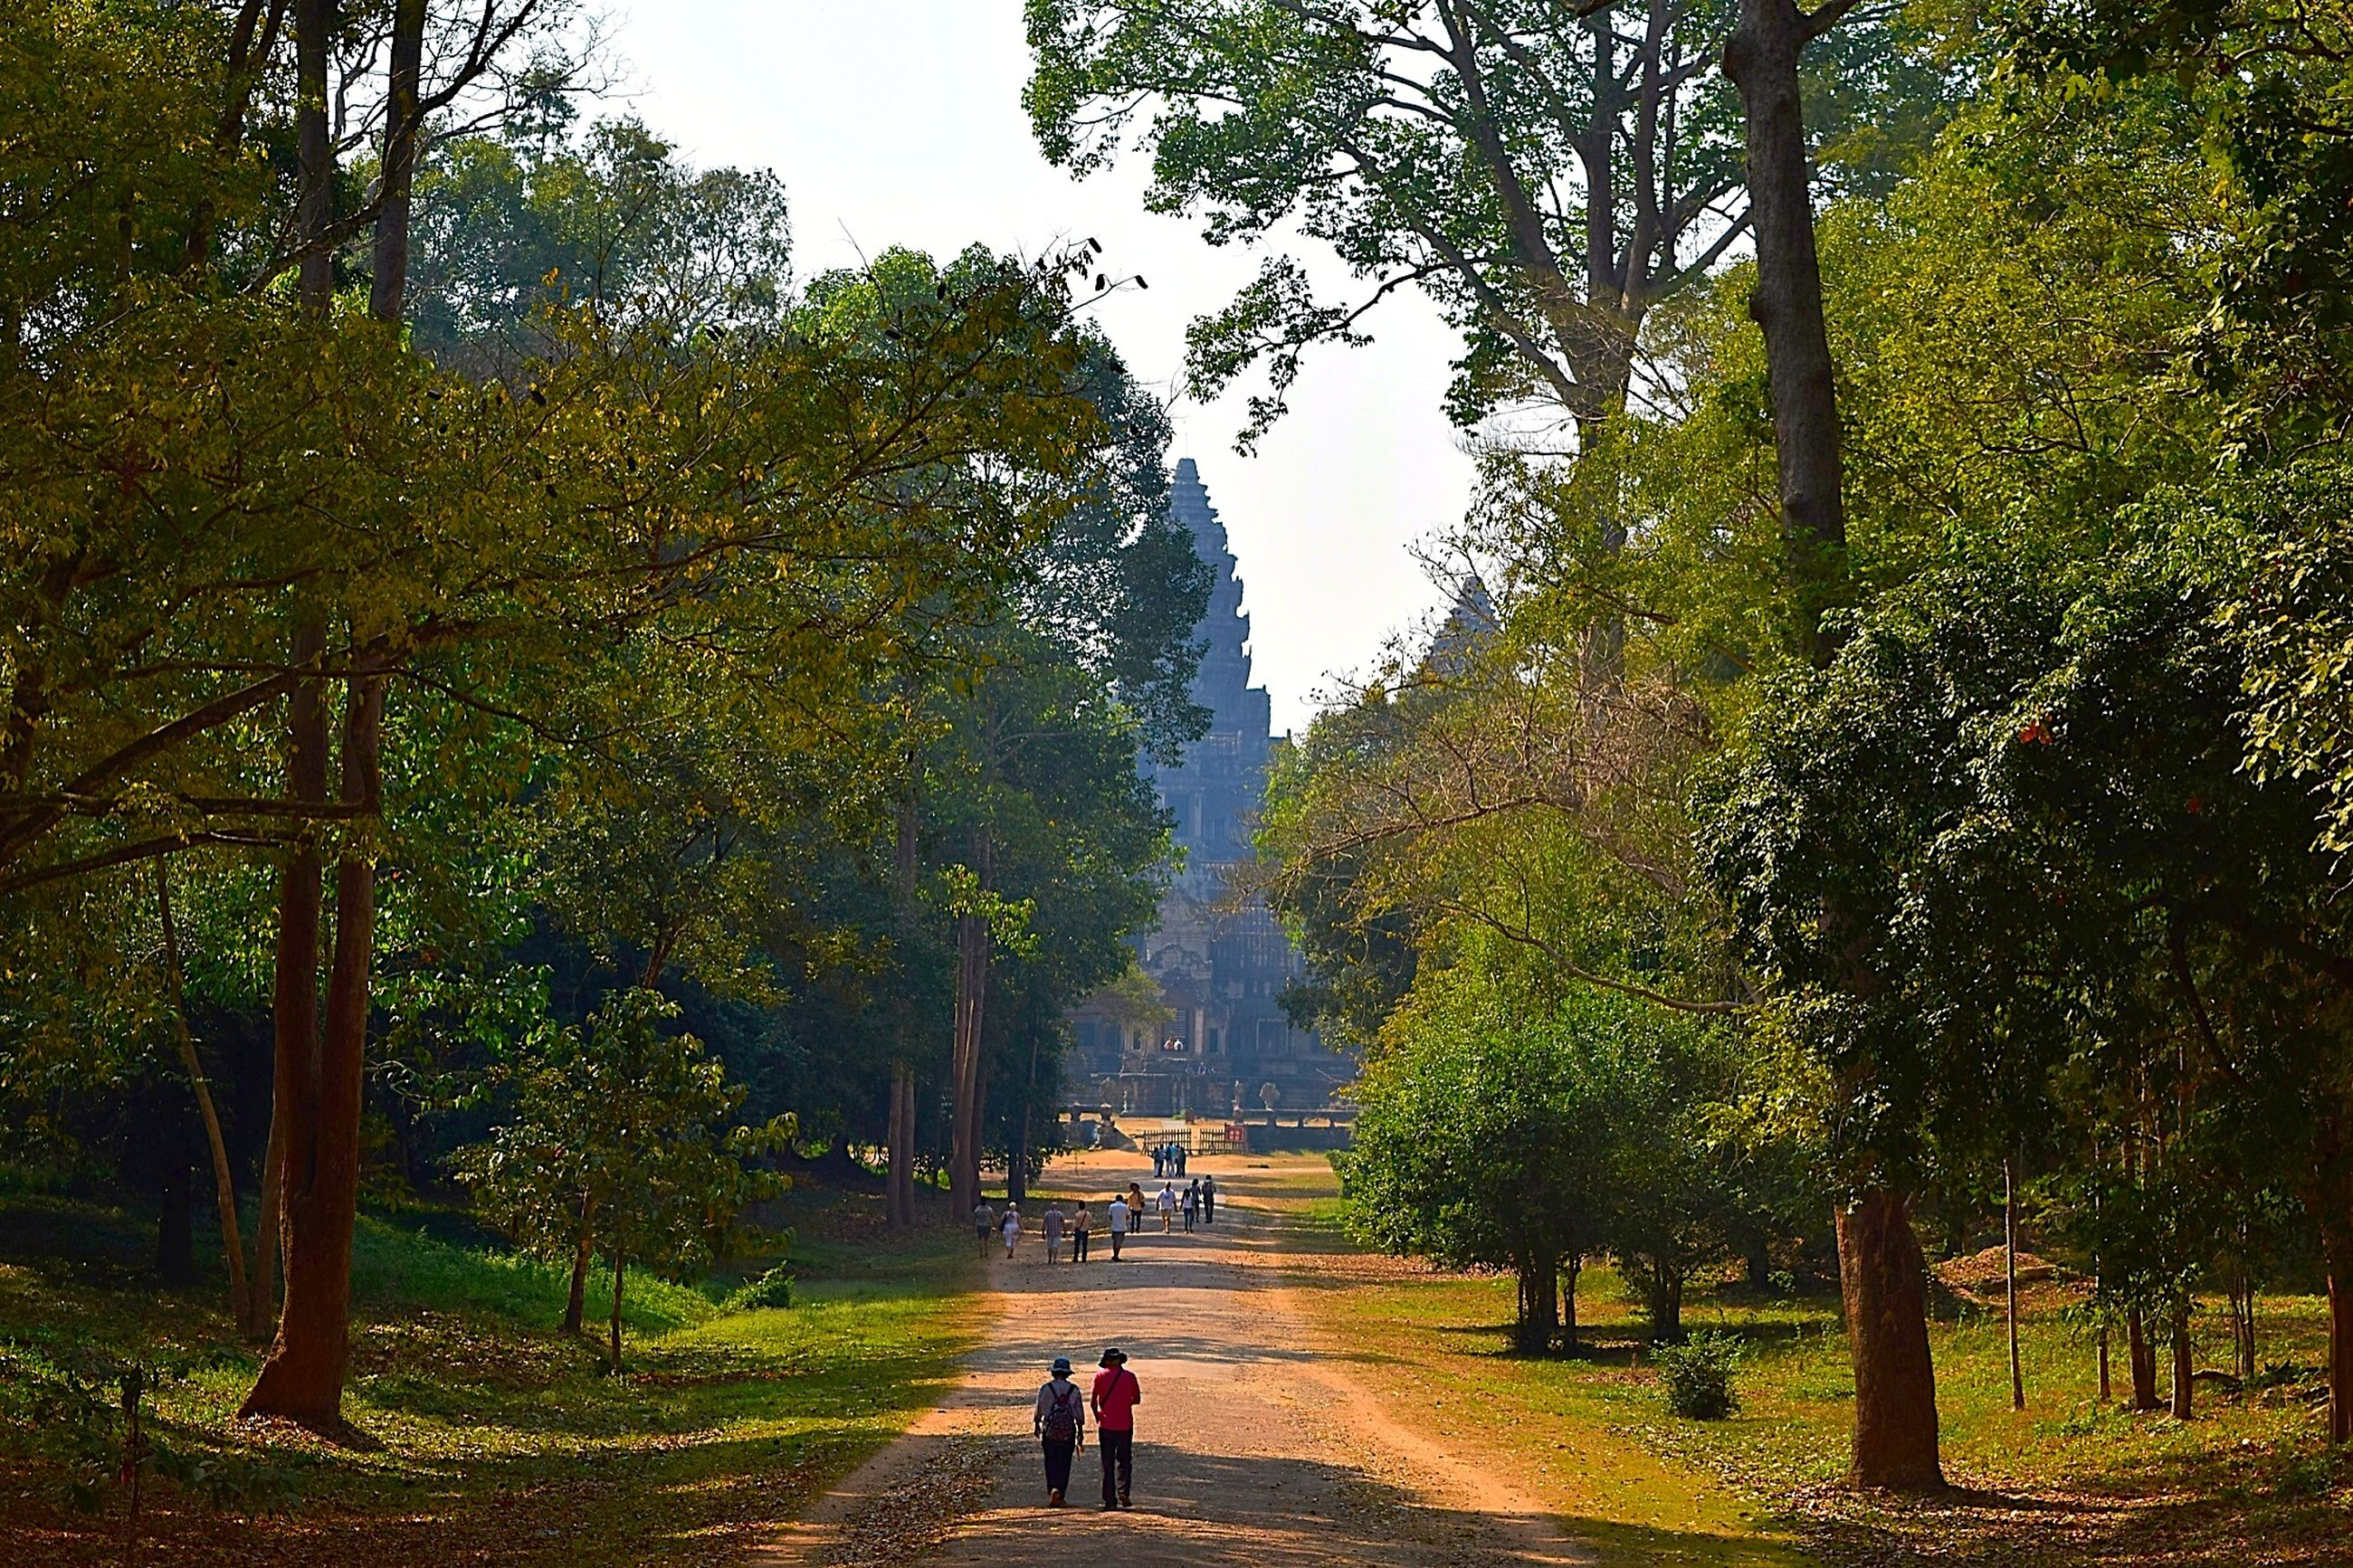 tree, lifestyles, rear view, leisure activity, the way forward, walking, men, full length, person, footpath, forest, growth, nature, tranquility, dirt road, diminishing perspective, green color